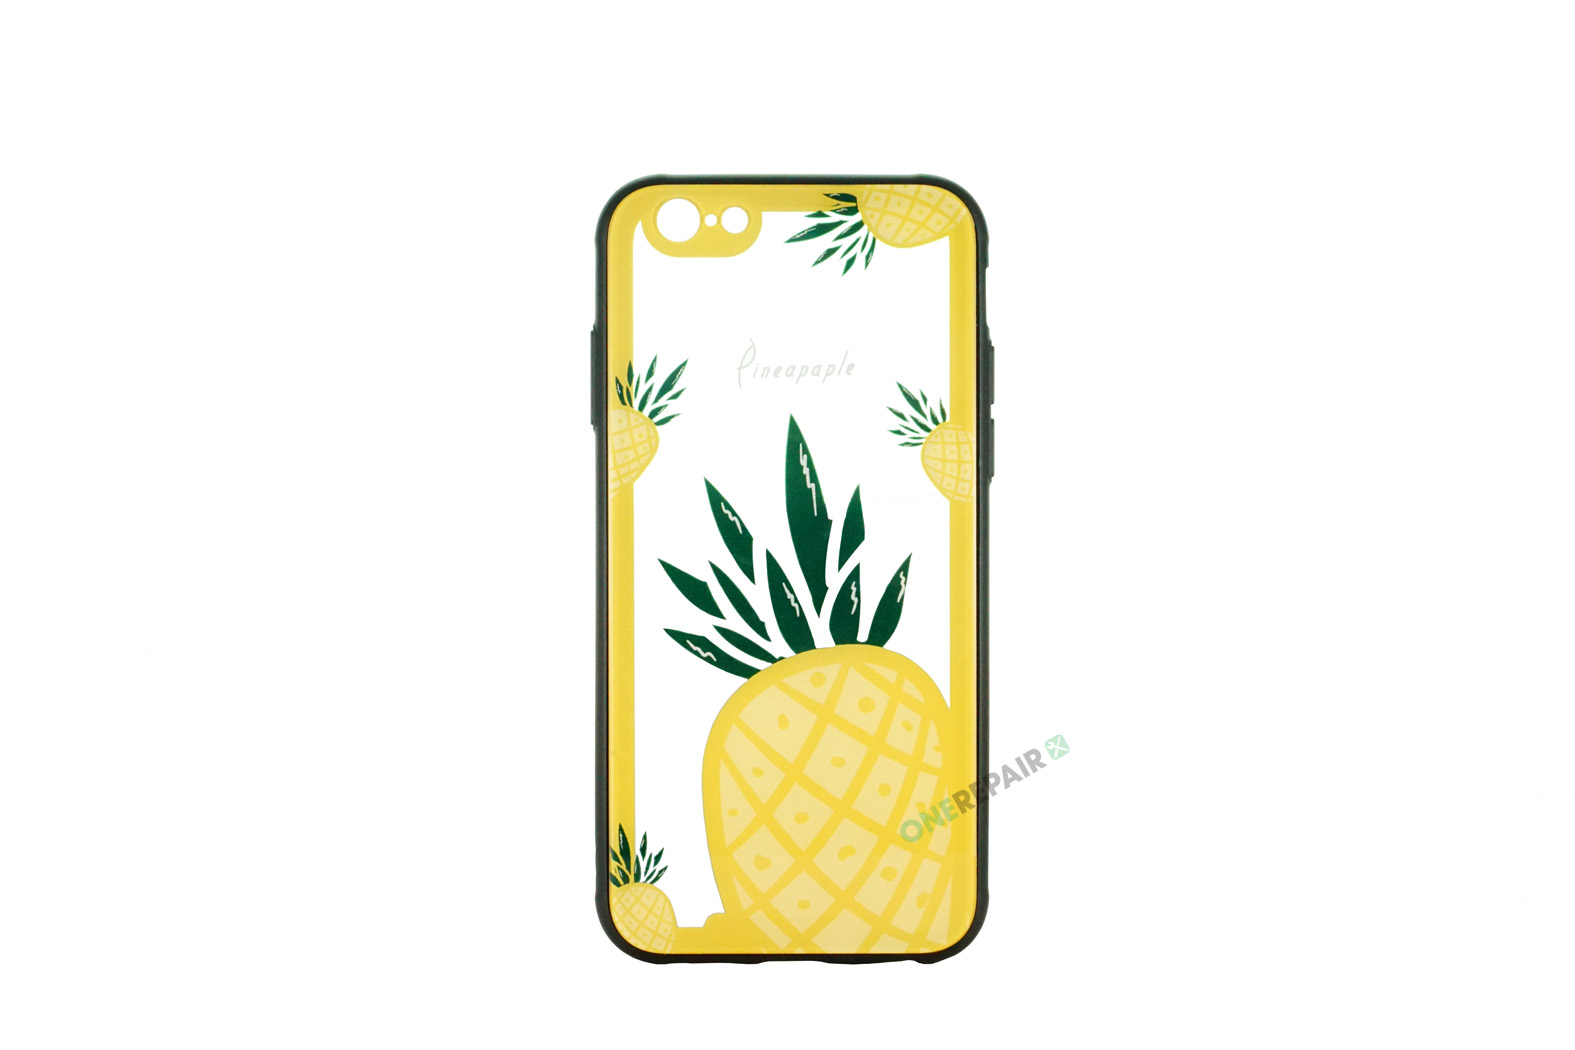 353608_iPhone_6_6S_Cover_Ananas_cover_OneRepair_00001